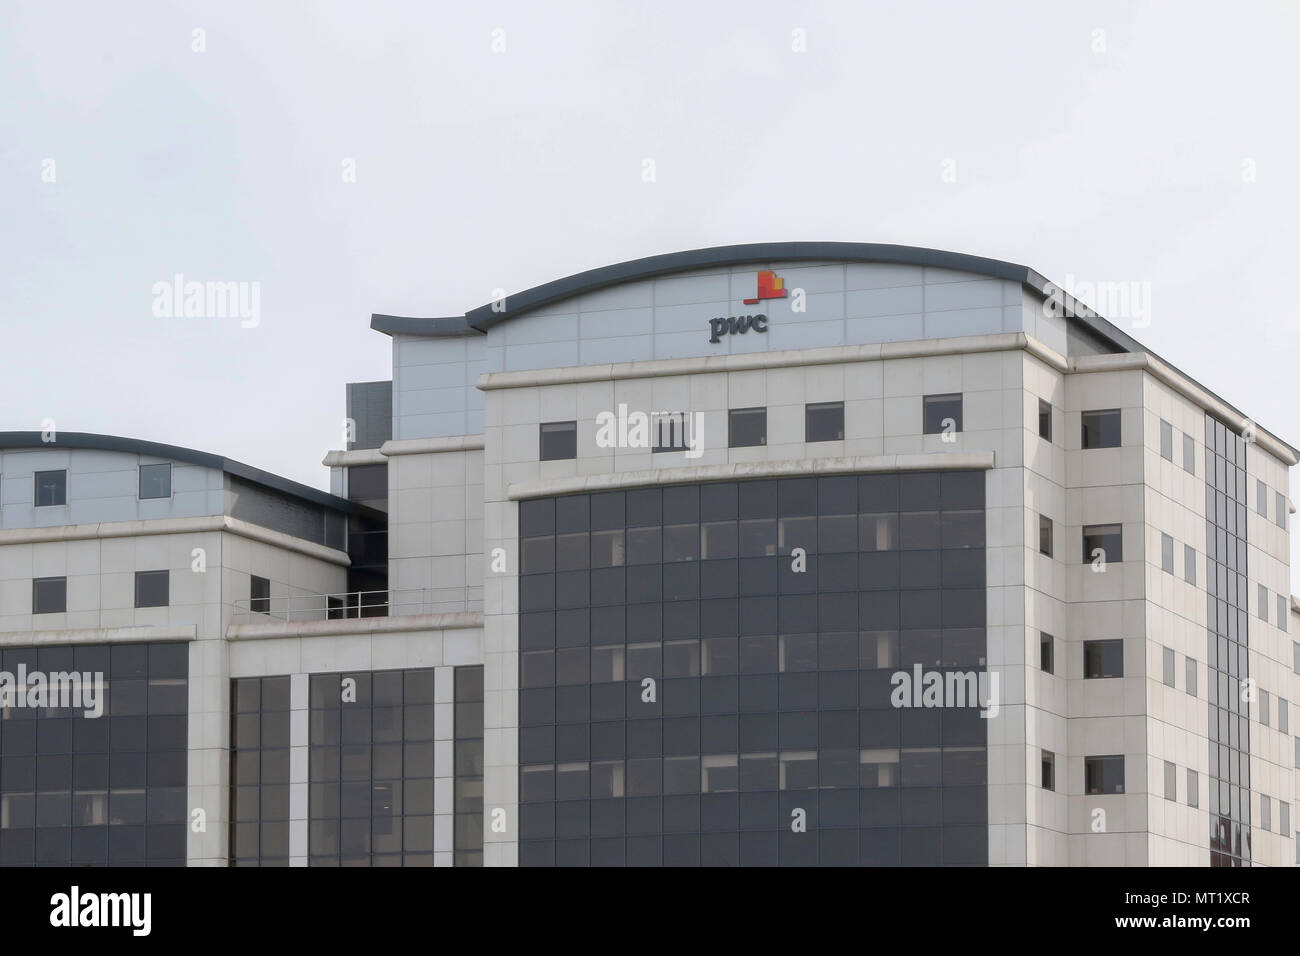 The PriceWaterhouseCooper offices at the Waterfront Plaza on the banks of the River Lagan in Belfast, Northern Ireland. - Stock Image